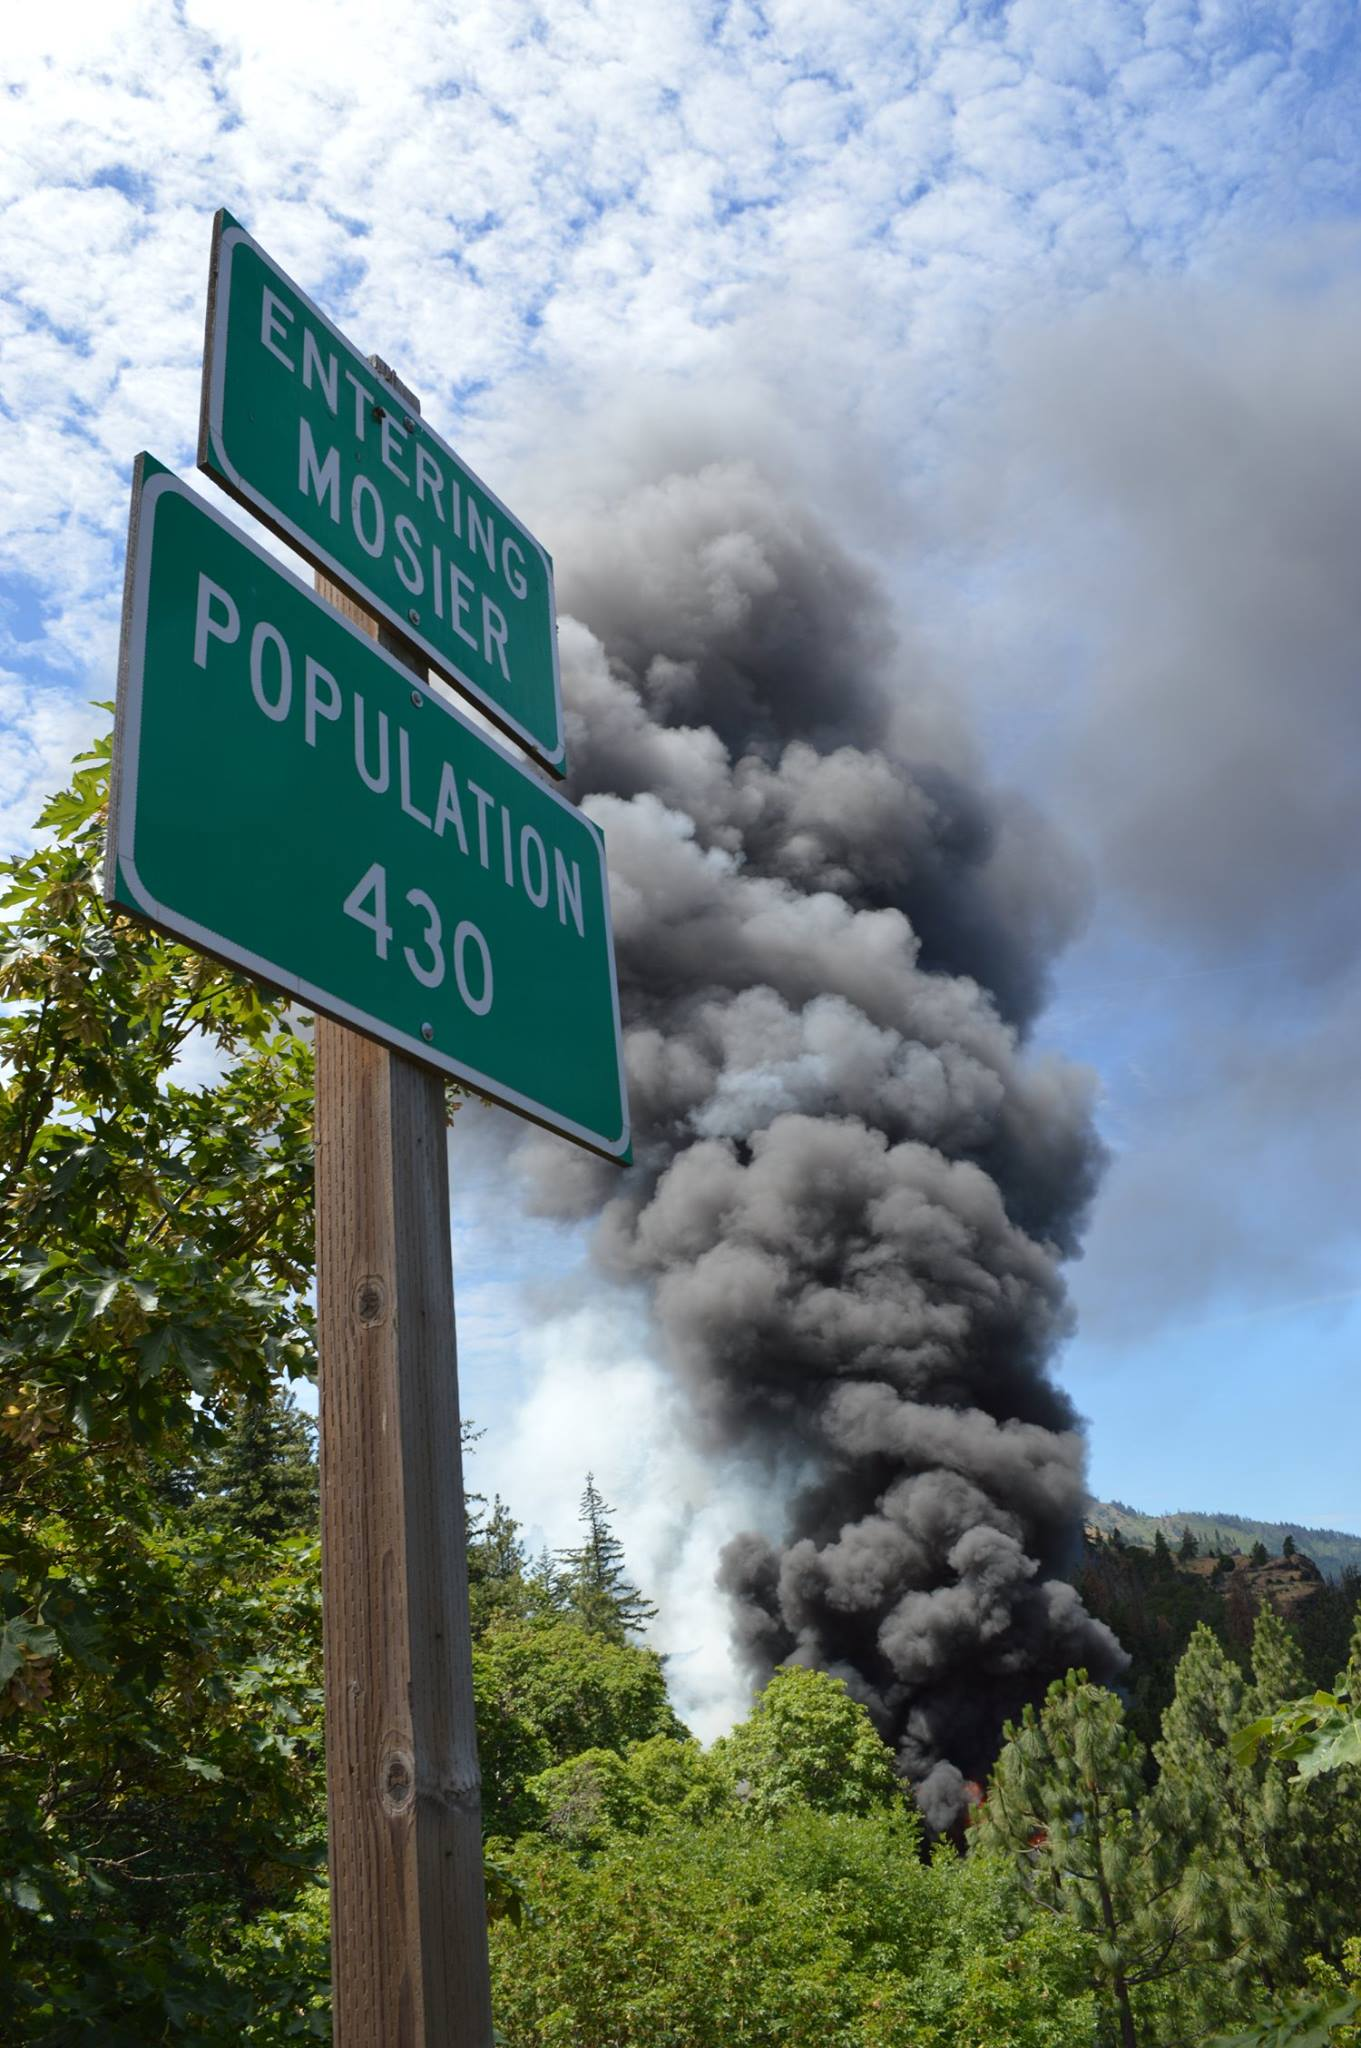 June 3, 2016 in Mosier, Oregon - oil train derailment disaster.   Photo: Hood River News / Patrick Mulville